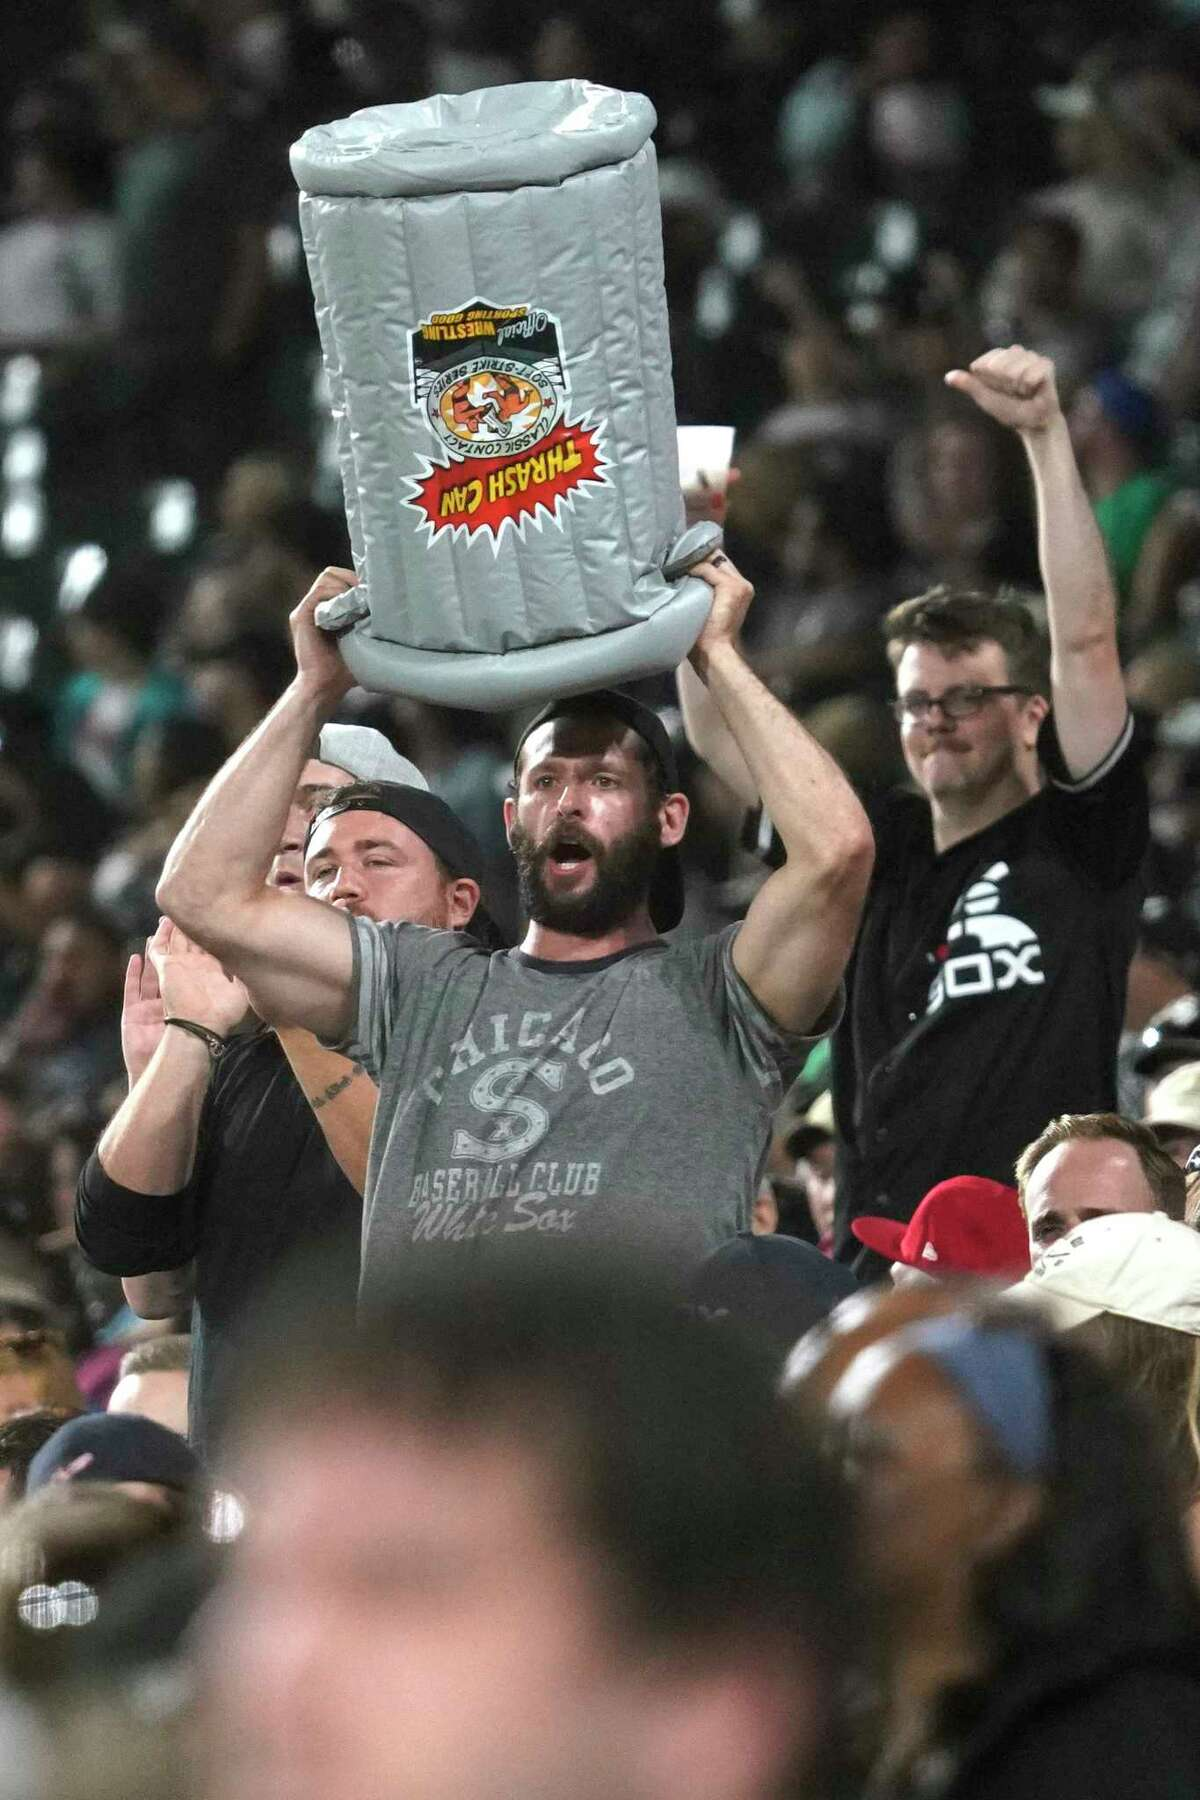 Fans watch during the ninth inning of a baseball game between the Houston Astros and the Chicago White Sox in Chicago, Saturday, July 17, 2021. The Chicago White Sox won 10-1. (AP Photo/Nam Y. Huh)